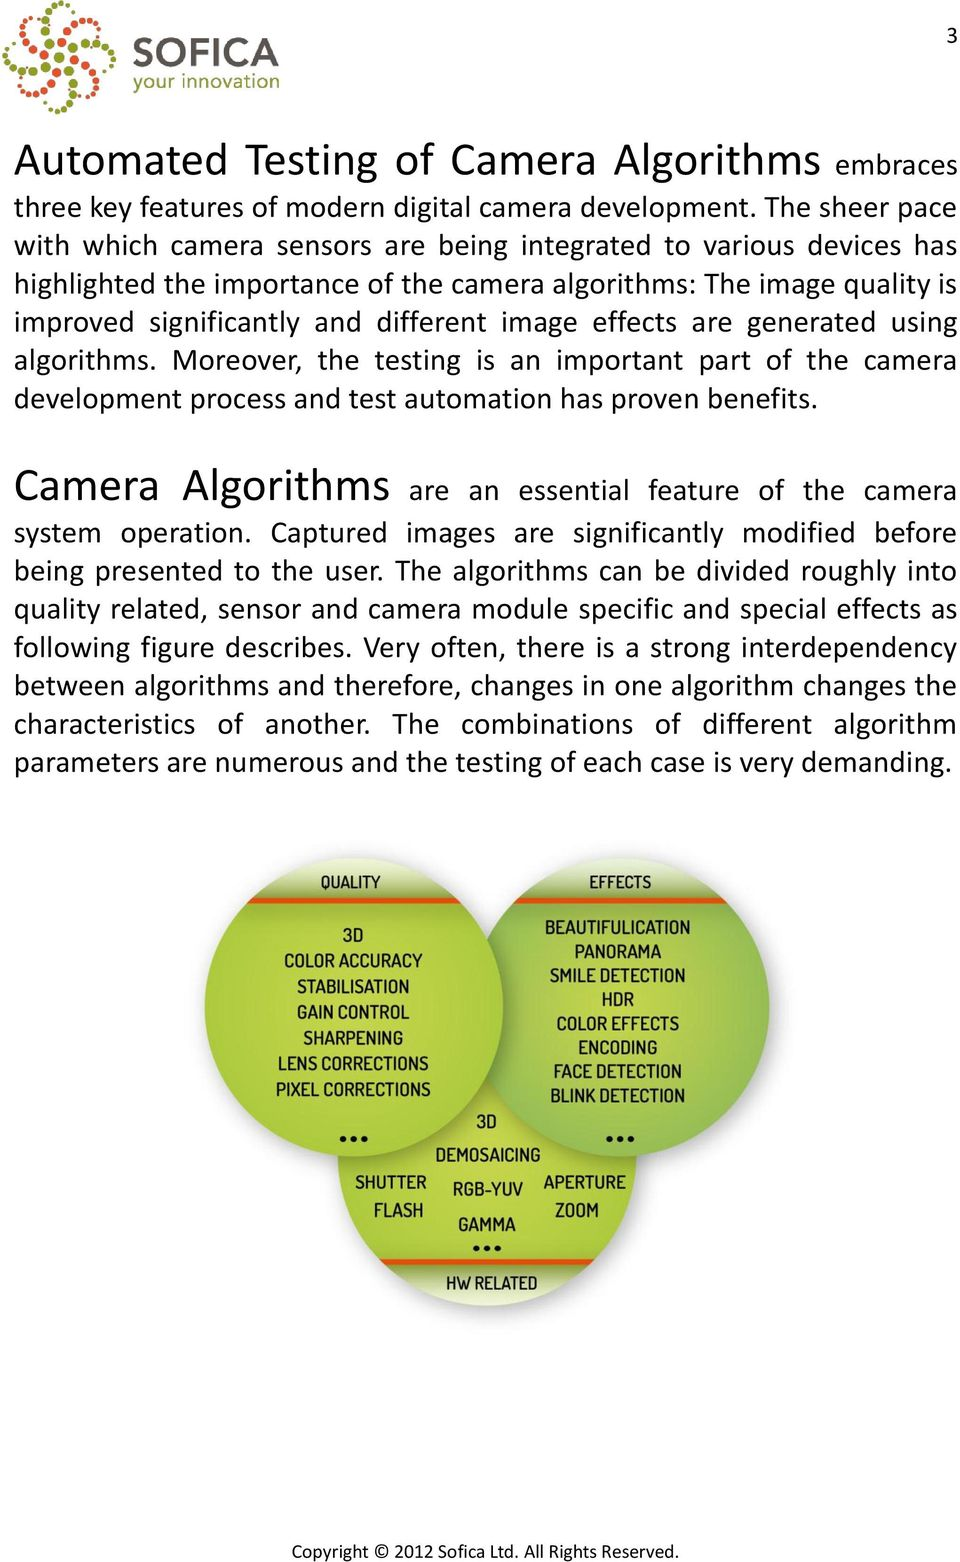 image effects are generated using algorithms. Moreover, the testing is an important part of the camera development process and test automation has proven benefits.